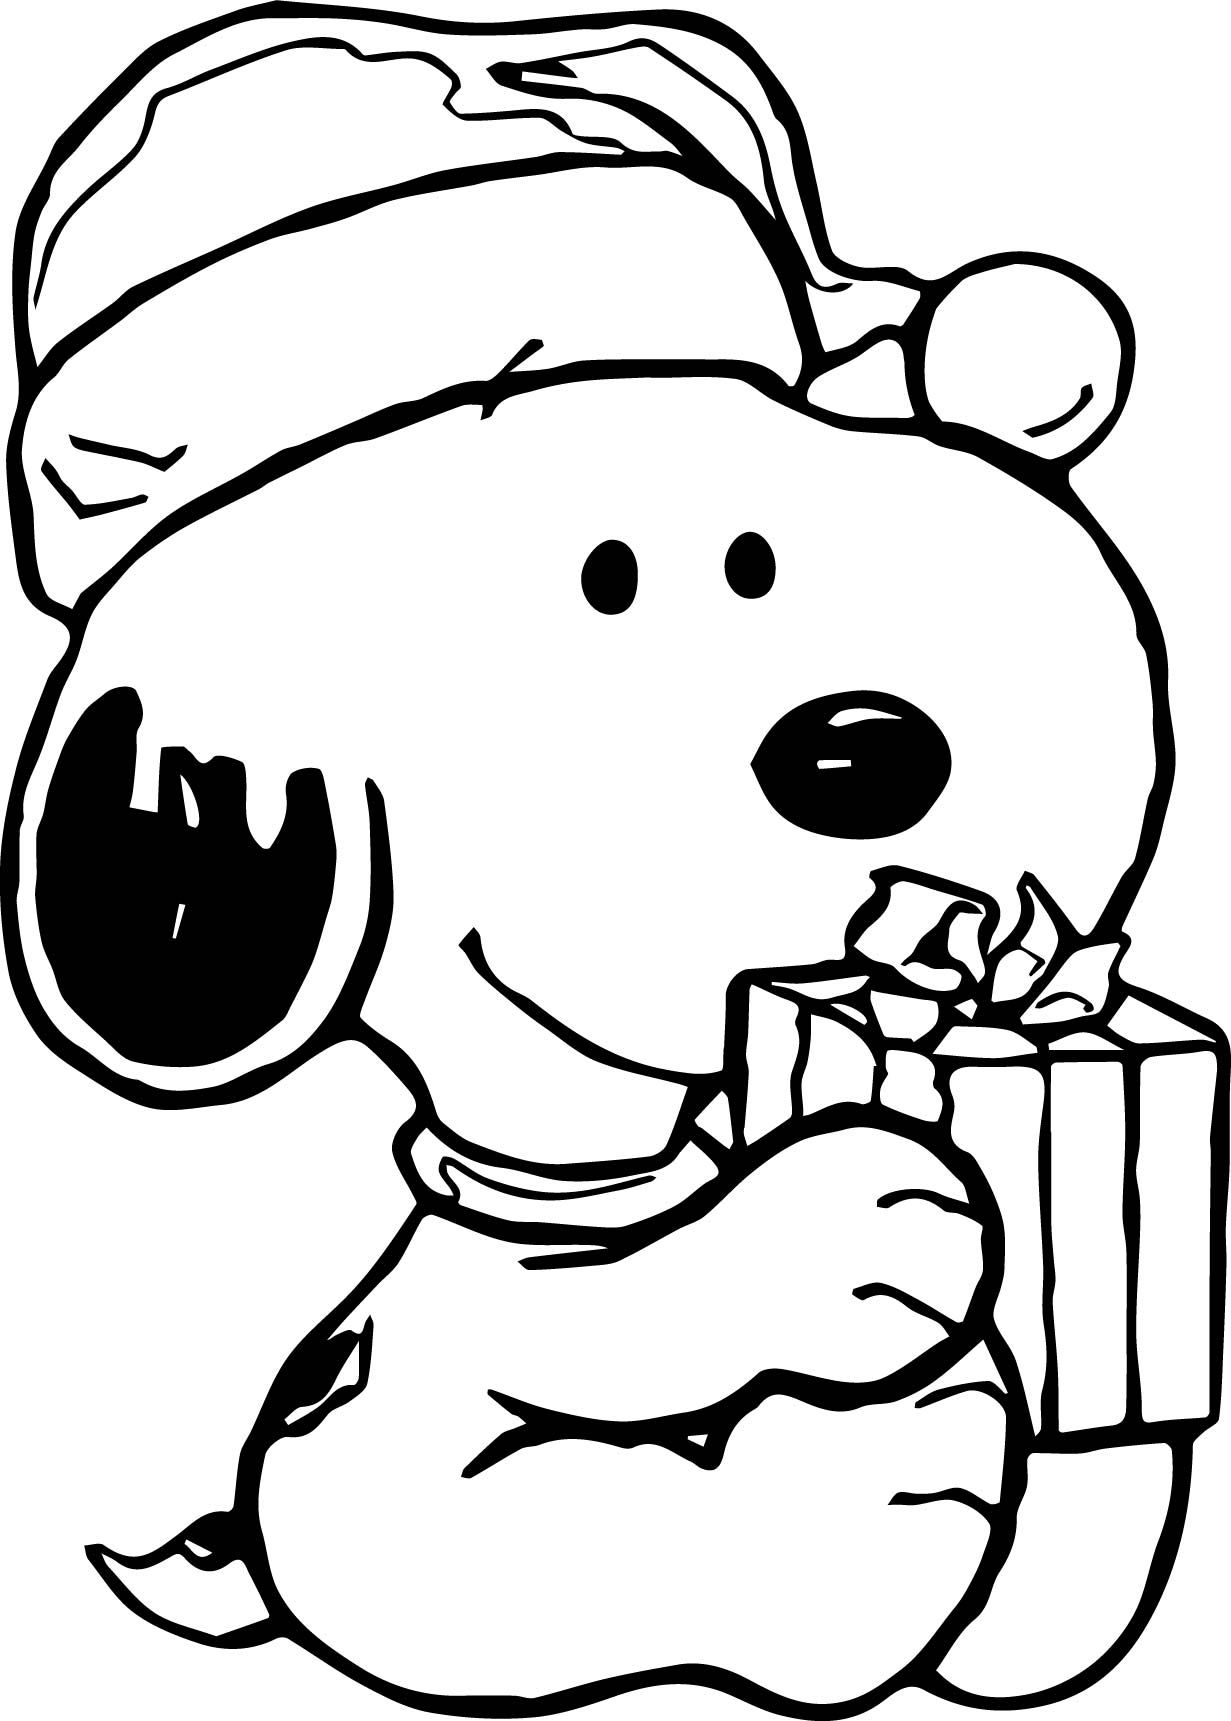 Related image peanut pinterest snoopy snoopy christmas and